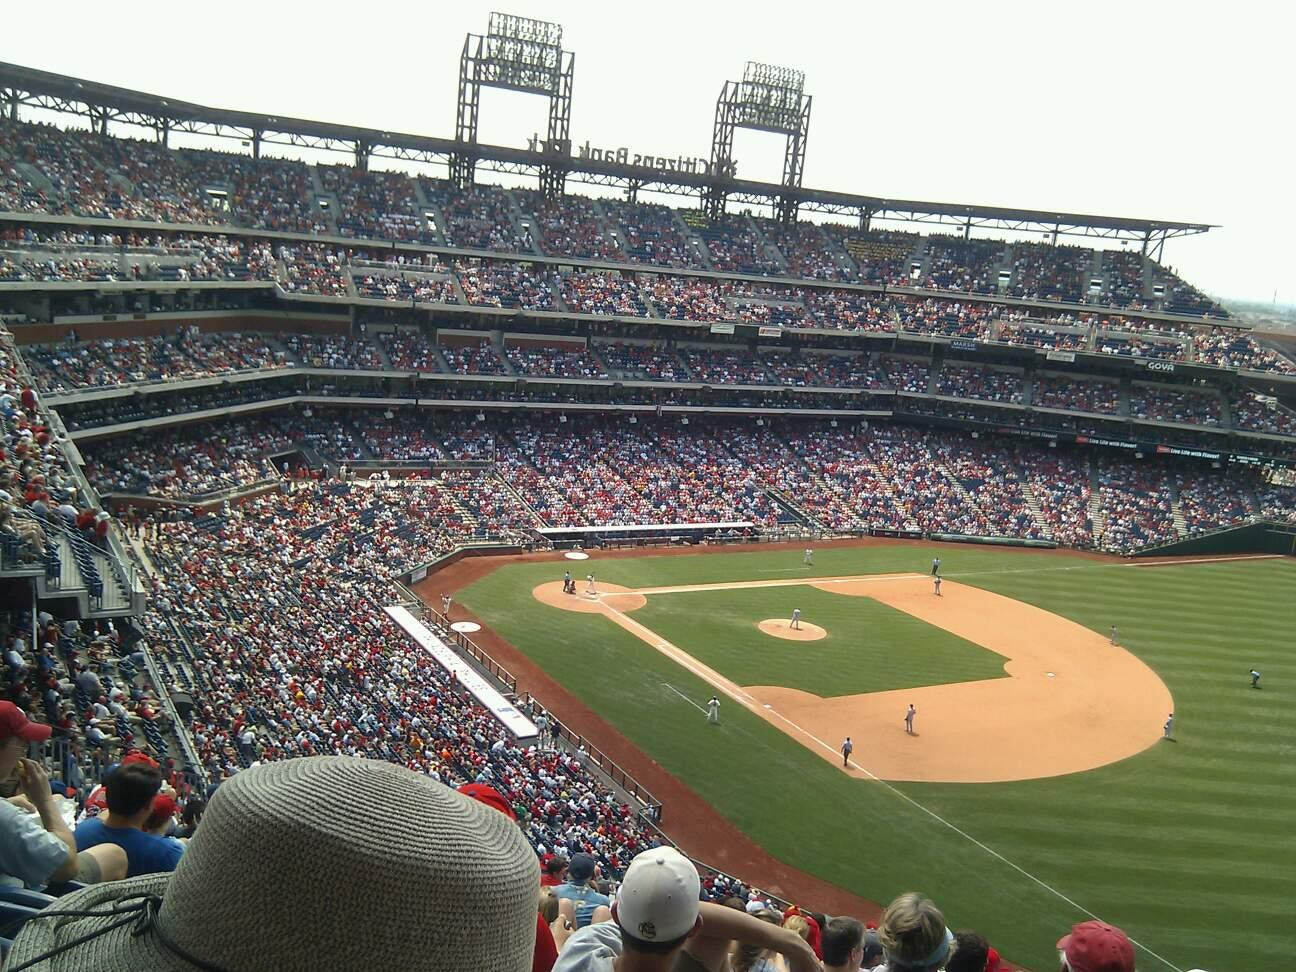 Citizens Bank Park Section 310 Row 18 Seat 6